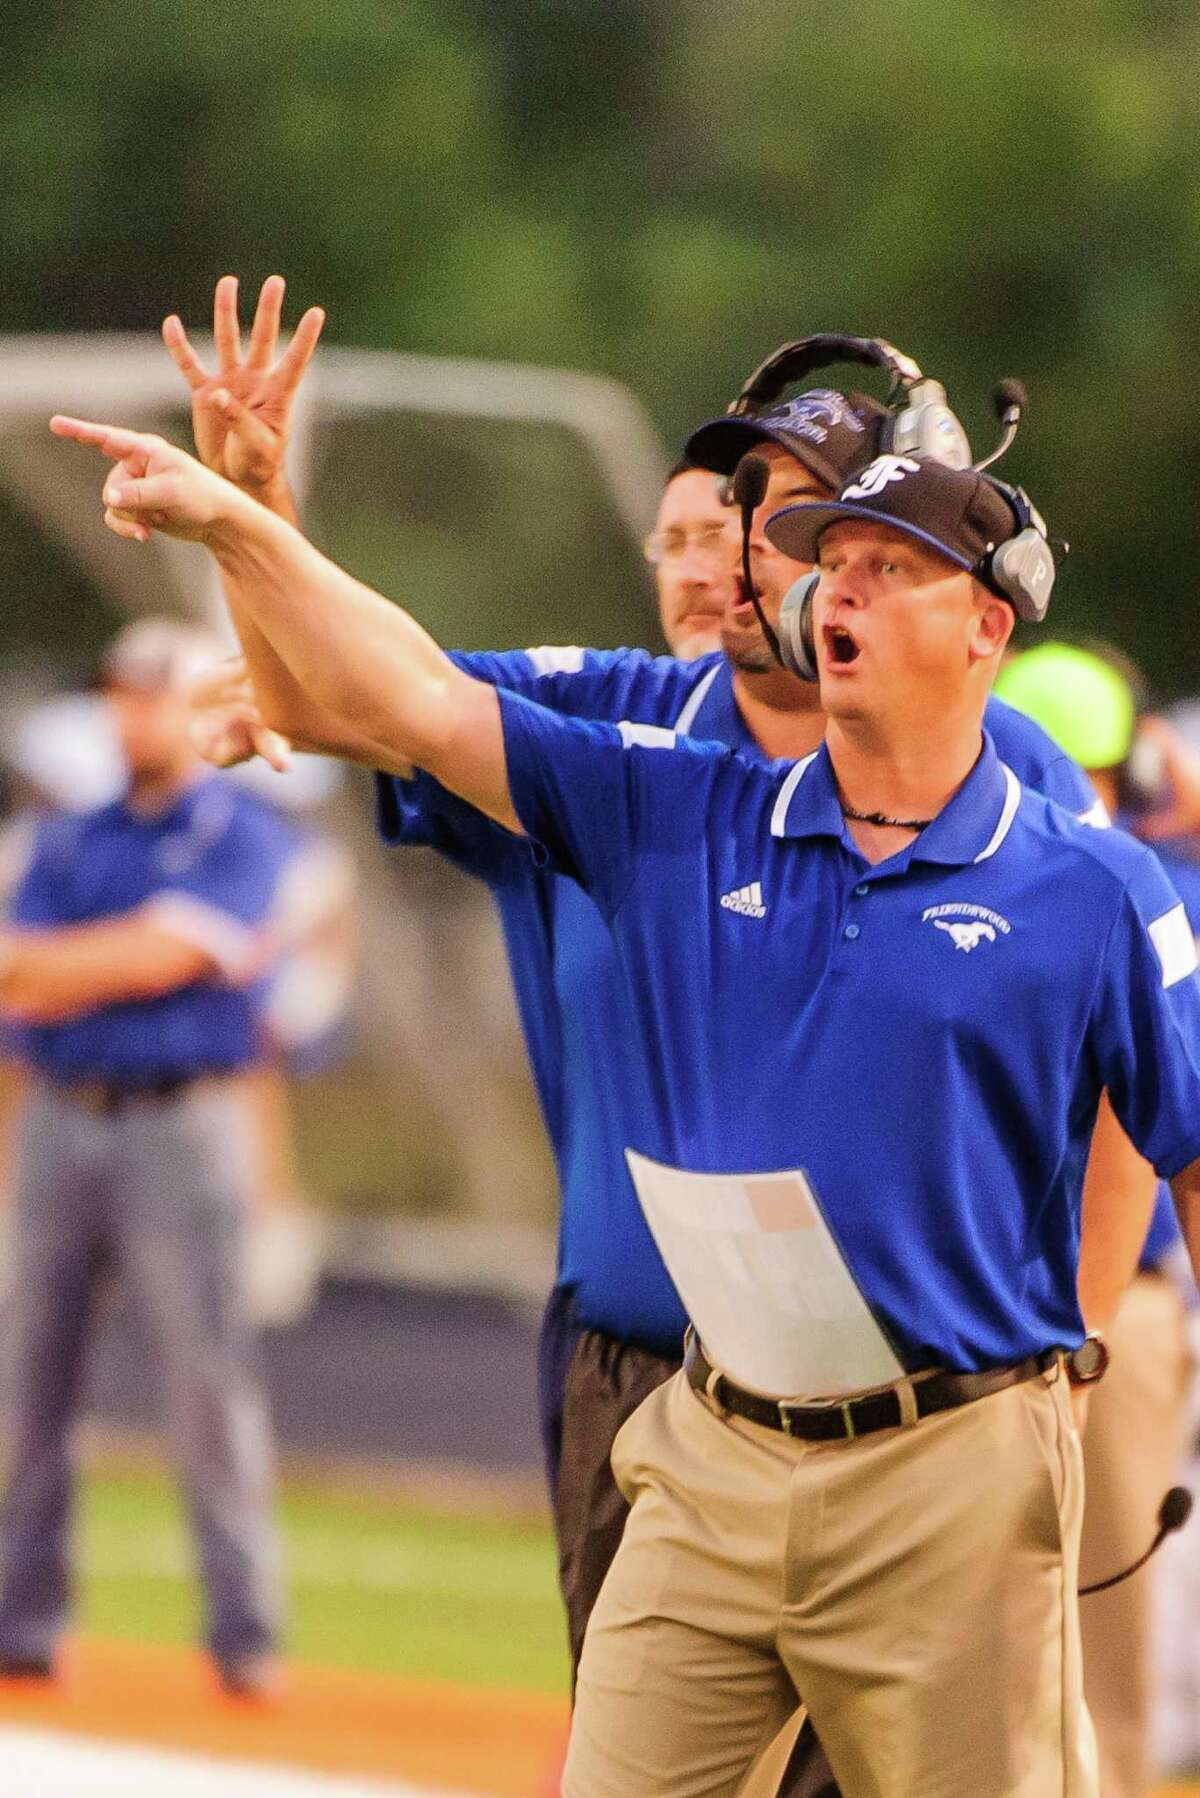 Friendswood head football coach Robert Koopman has his team pointed in the right direction according to Dave Campbell's Texas Football Magazine.